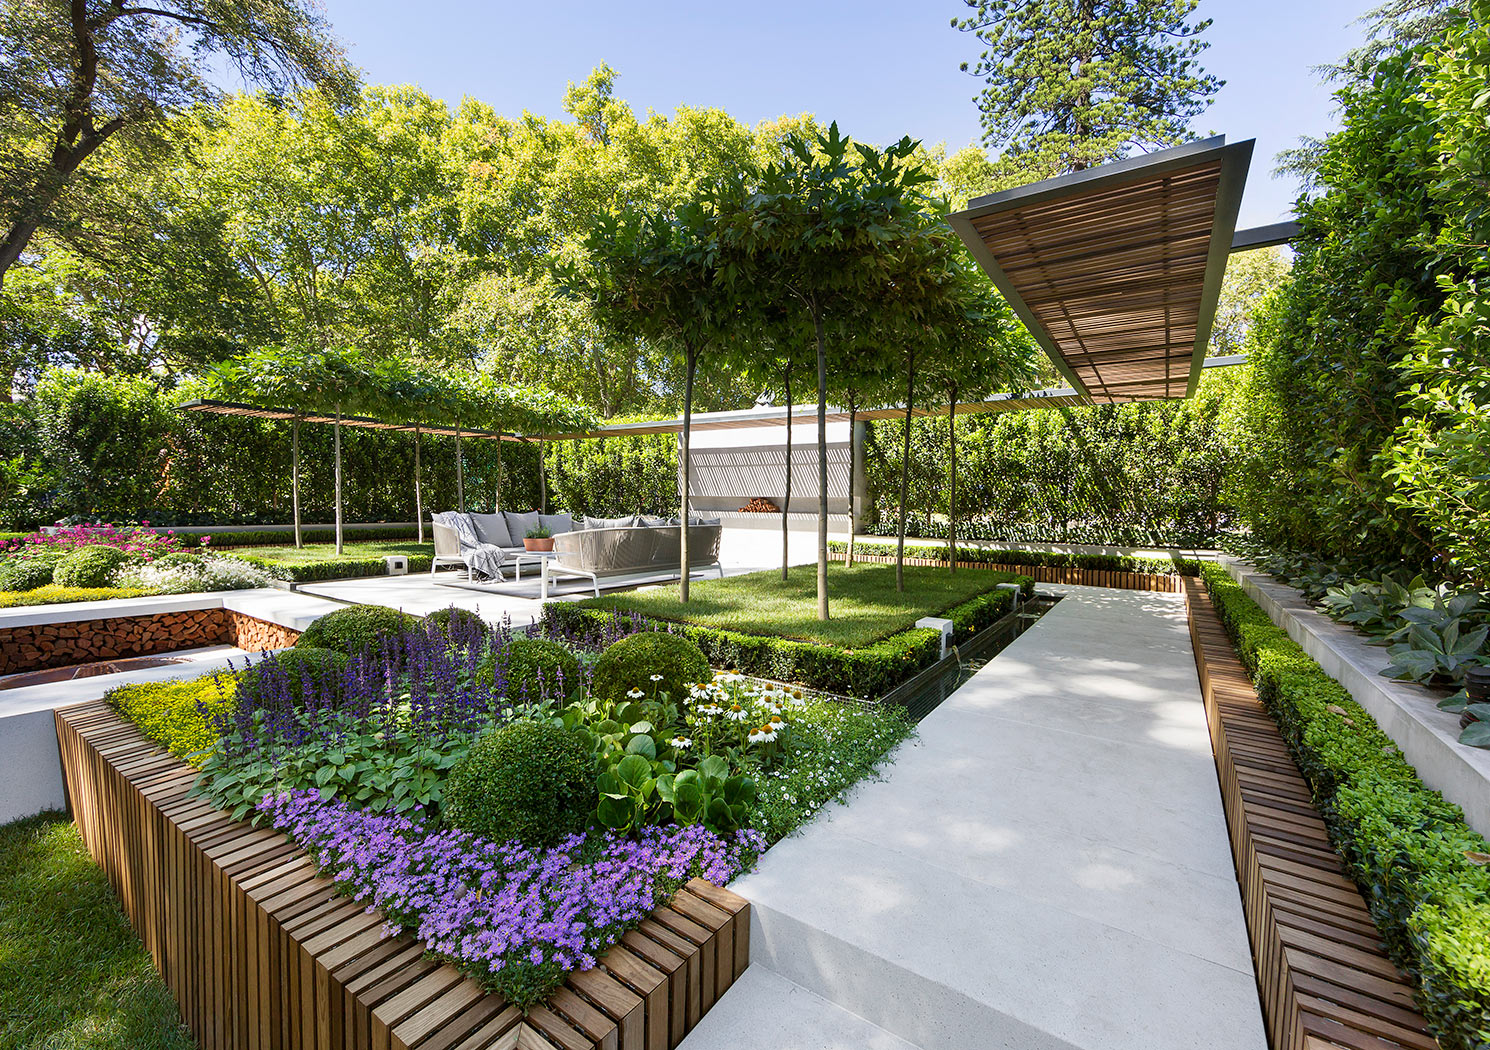 Landscape garden designer melbourne nathan burkett design for Landscape and design